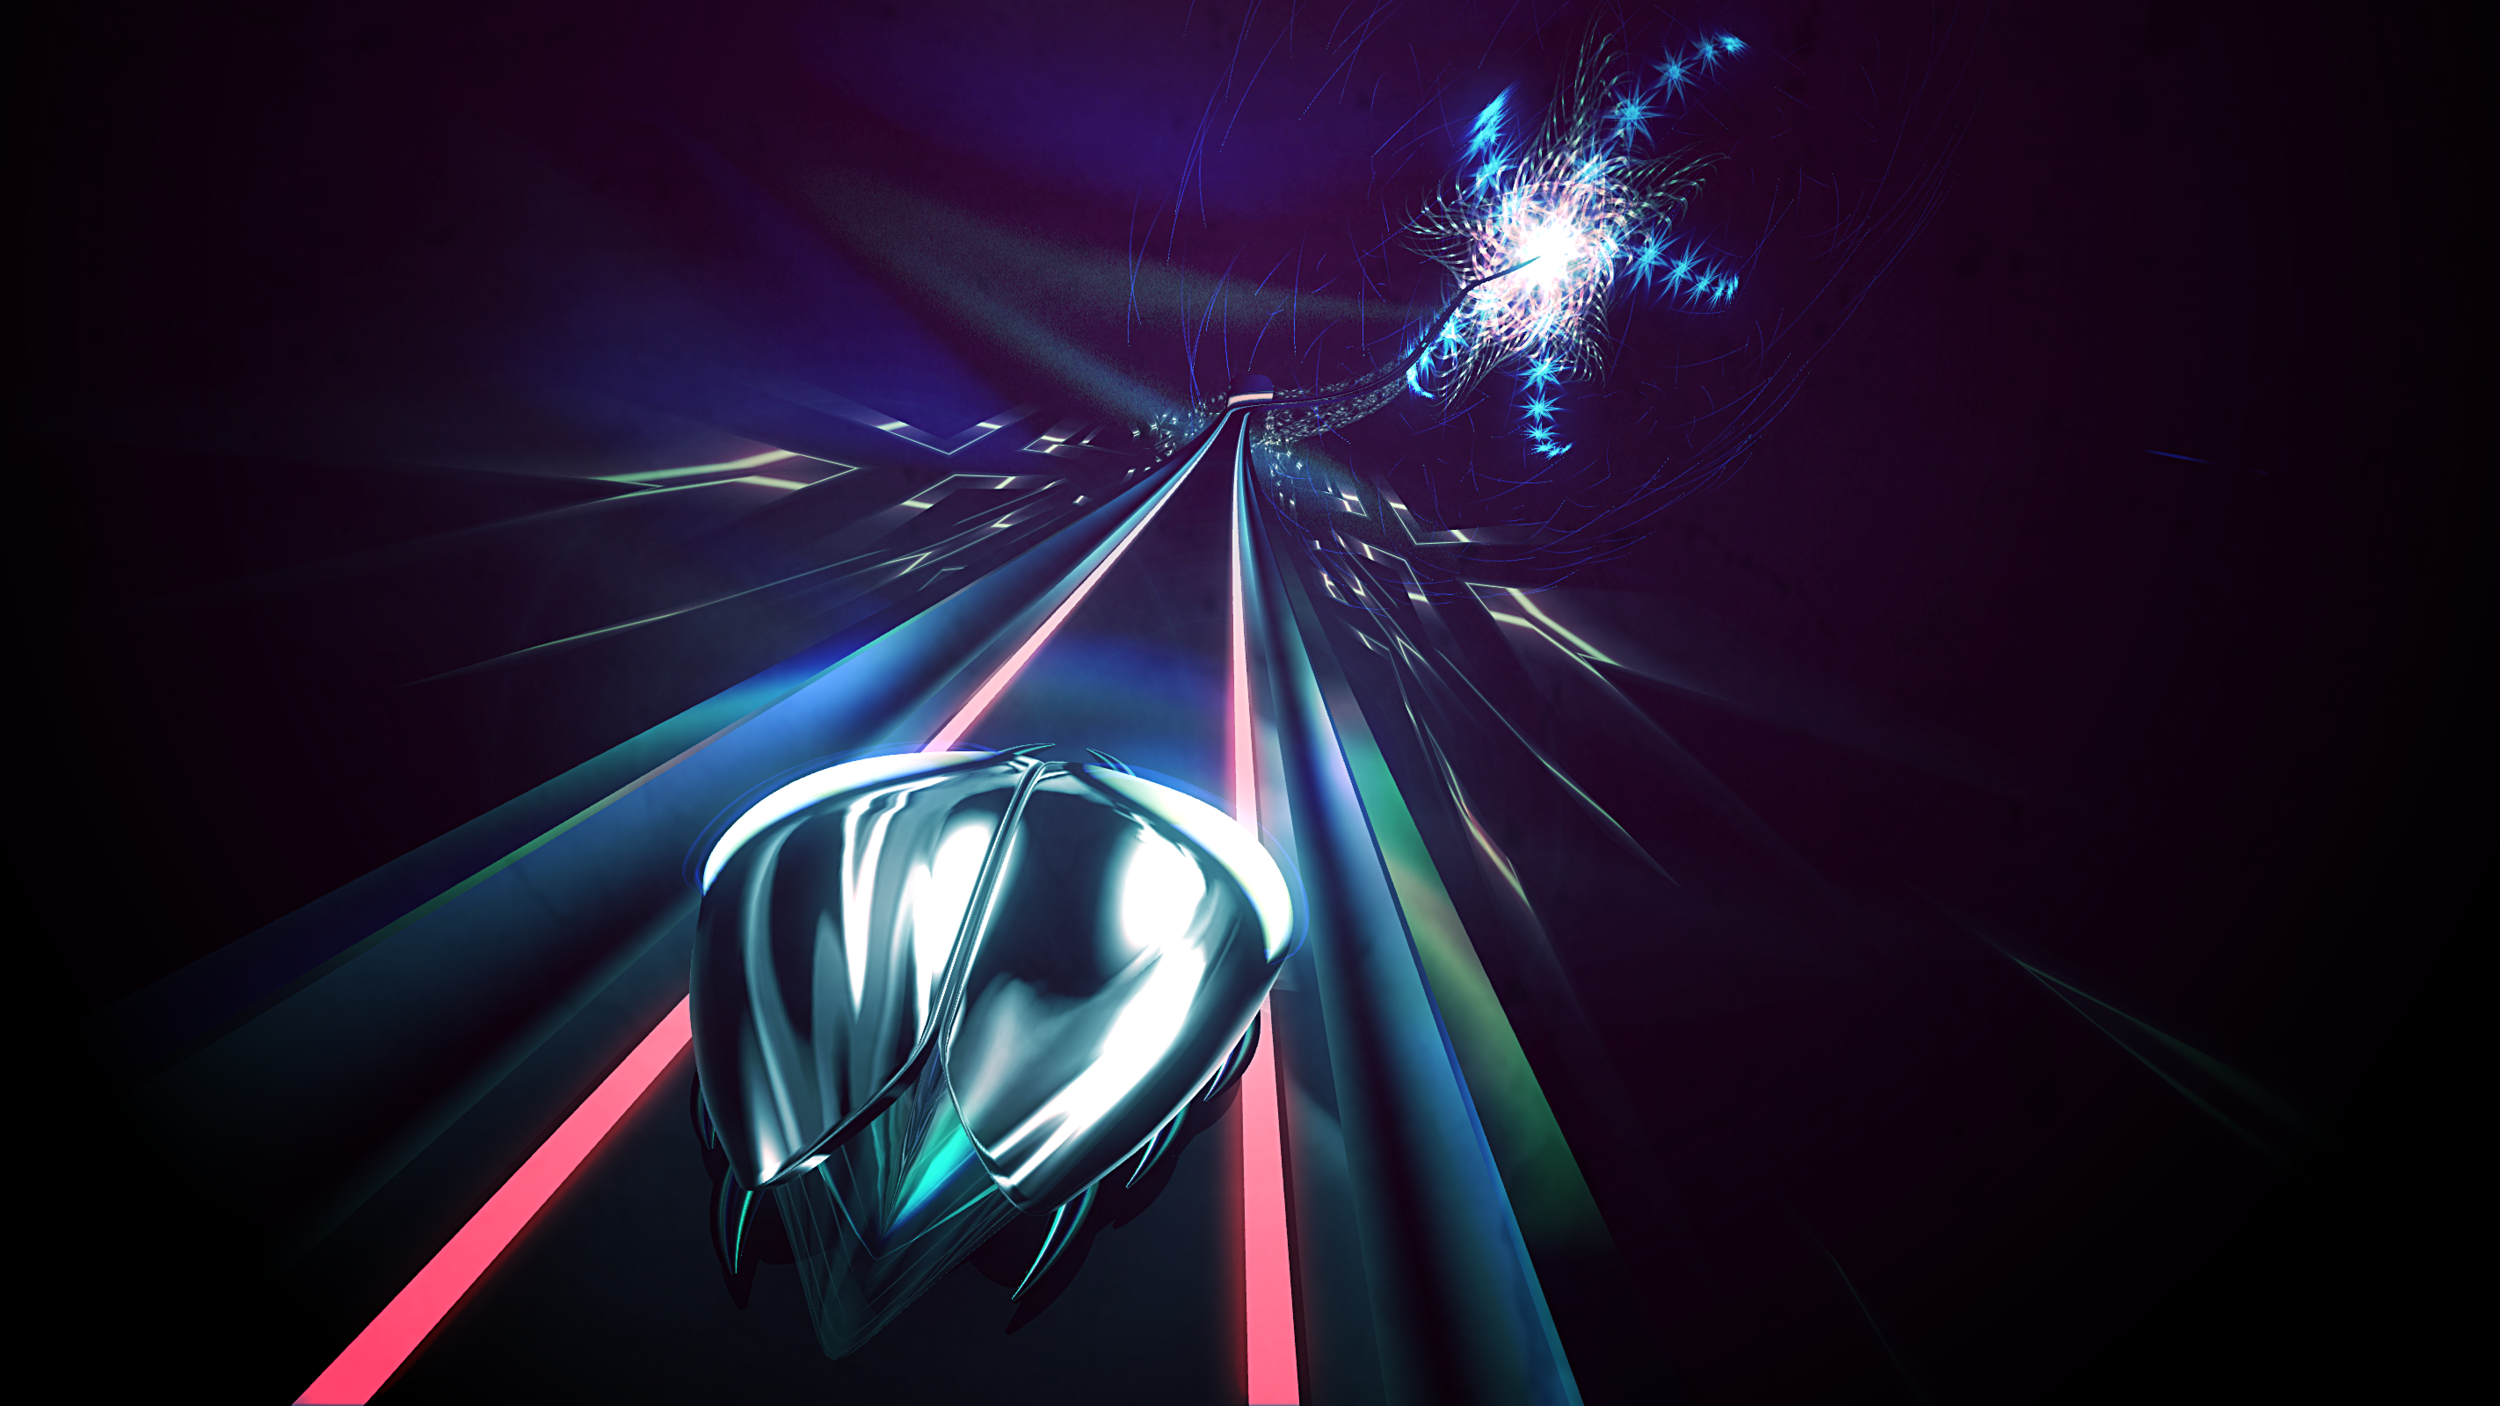 Thumper_screenshot_010.png